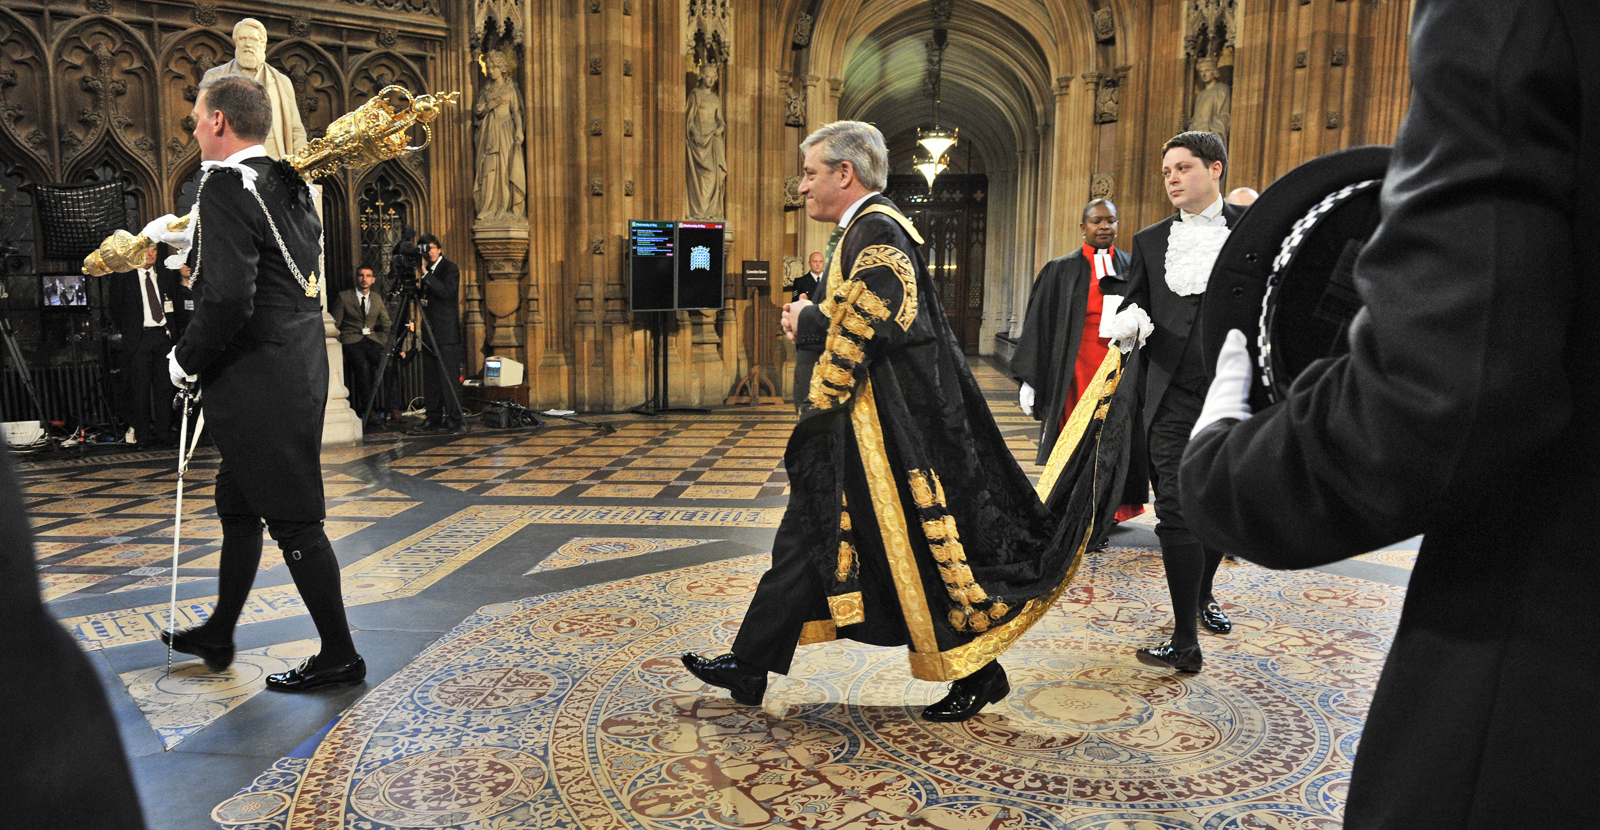 John Bercow in the Speakers Procession in the State Opening of Parliament 2013